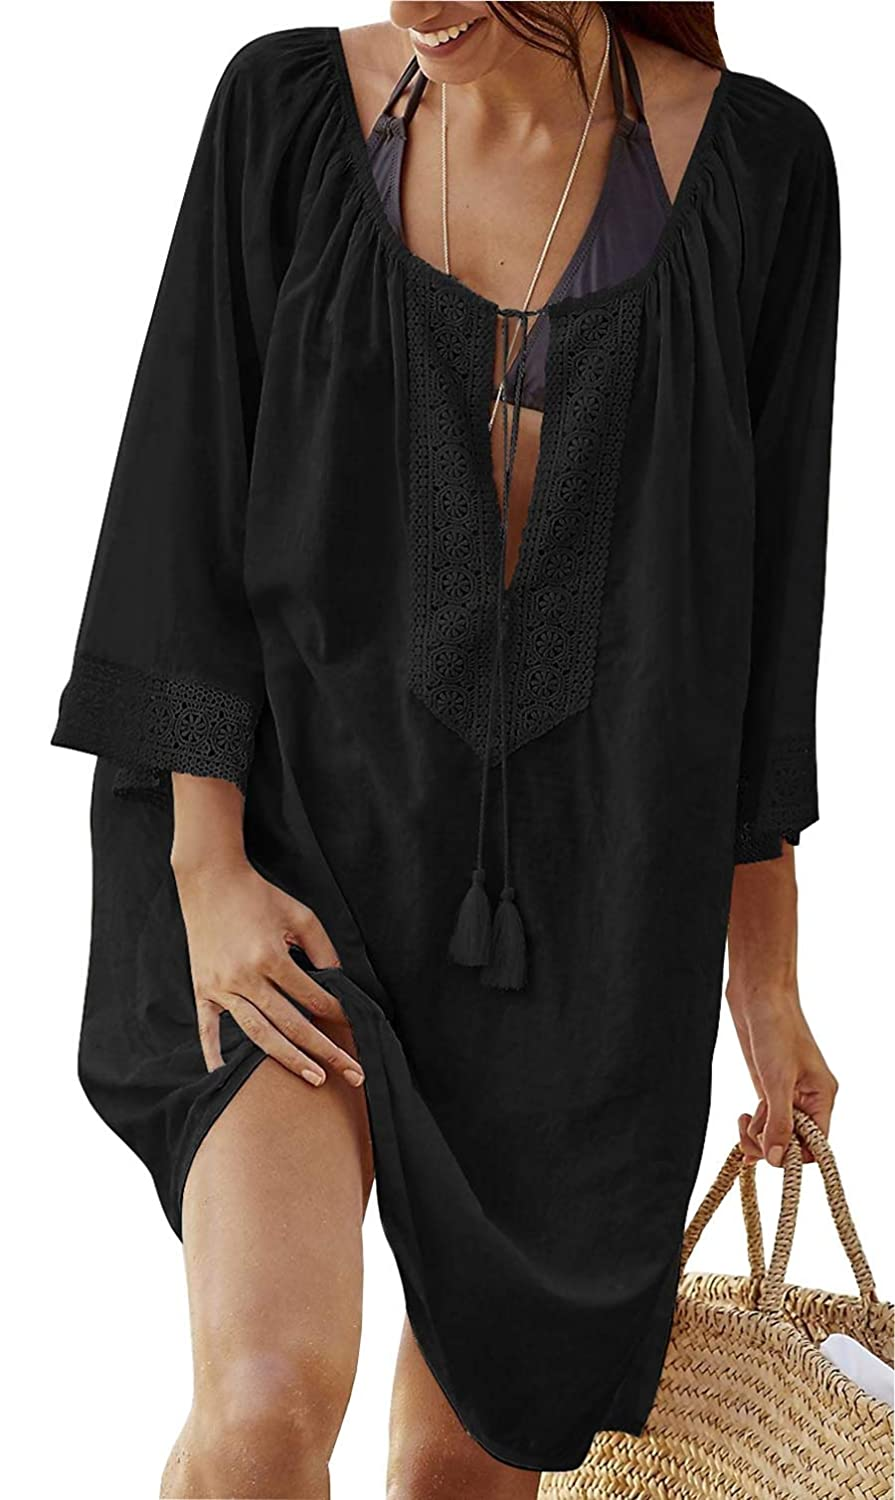 Dreamlove Damen Strandkleid Bikini Cover Up Sommer Baumwolle Lose Tunika Shirt Strandtunika Überwurf Blusenkleider Strandponcho Sommerkleid Kaftan Badeanzug